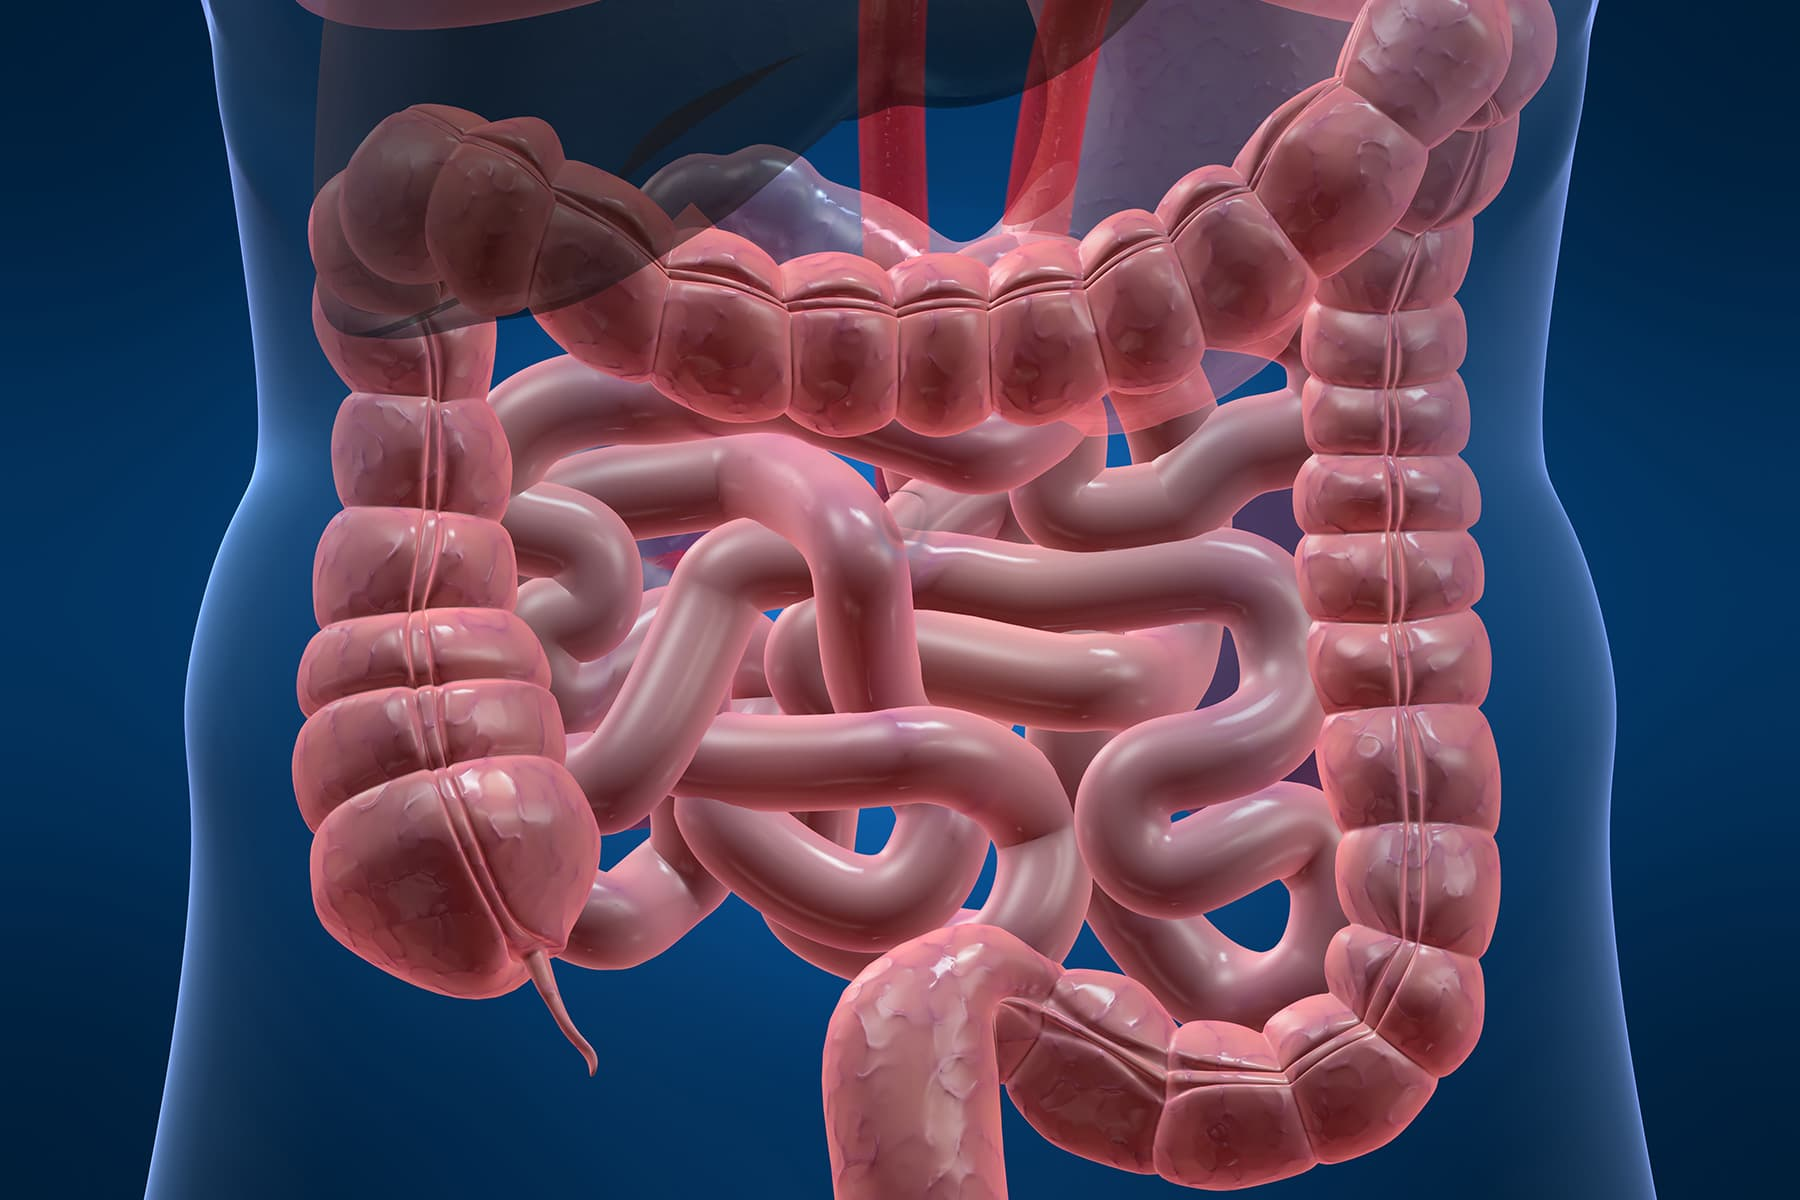 intestines illustration